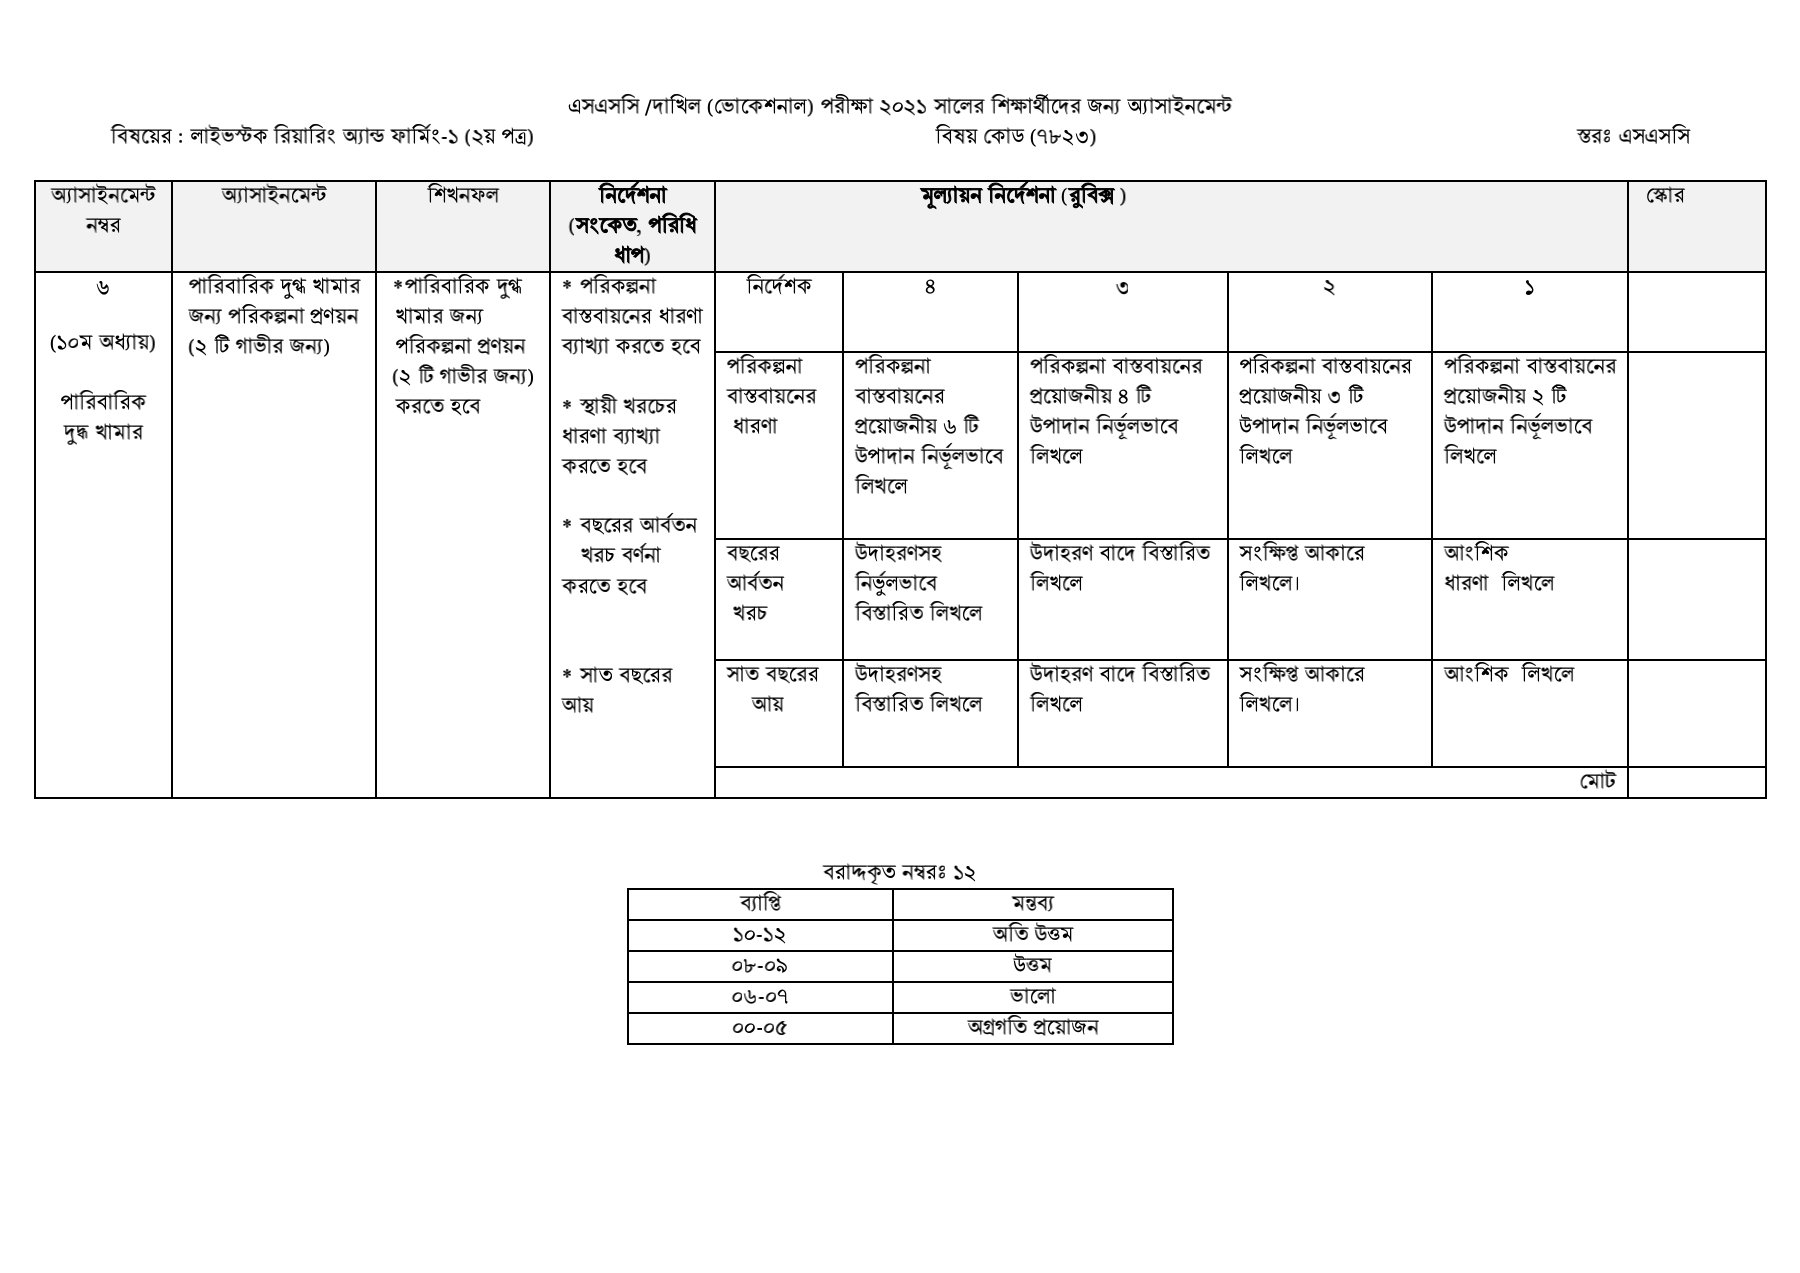 SSC / Dakhil (Vocational) Livestock Rearing and Farming Assignment Answer 2021 16